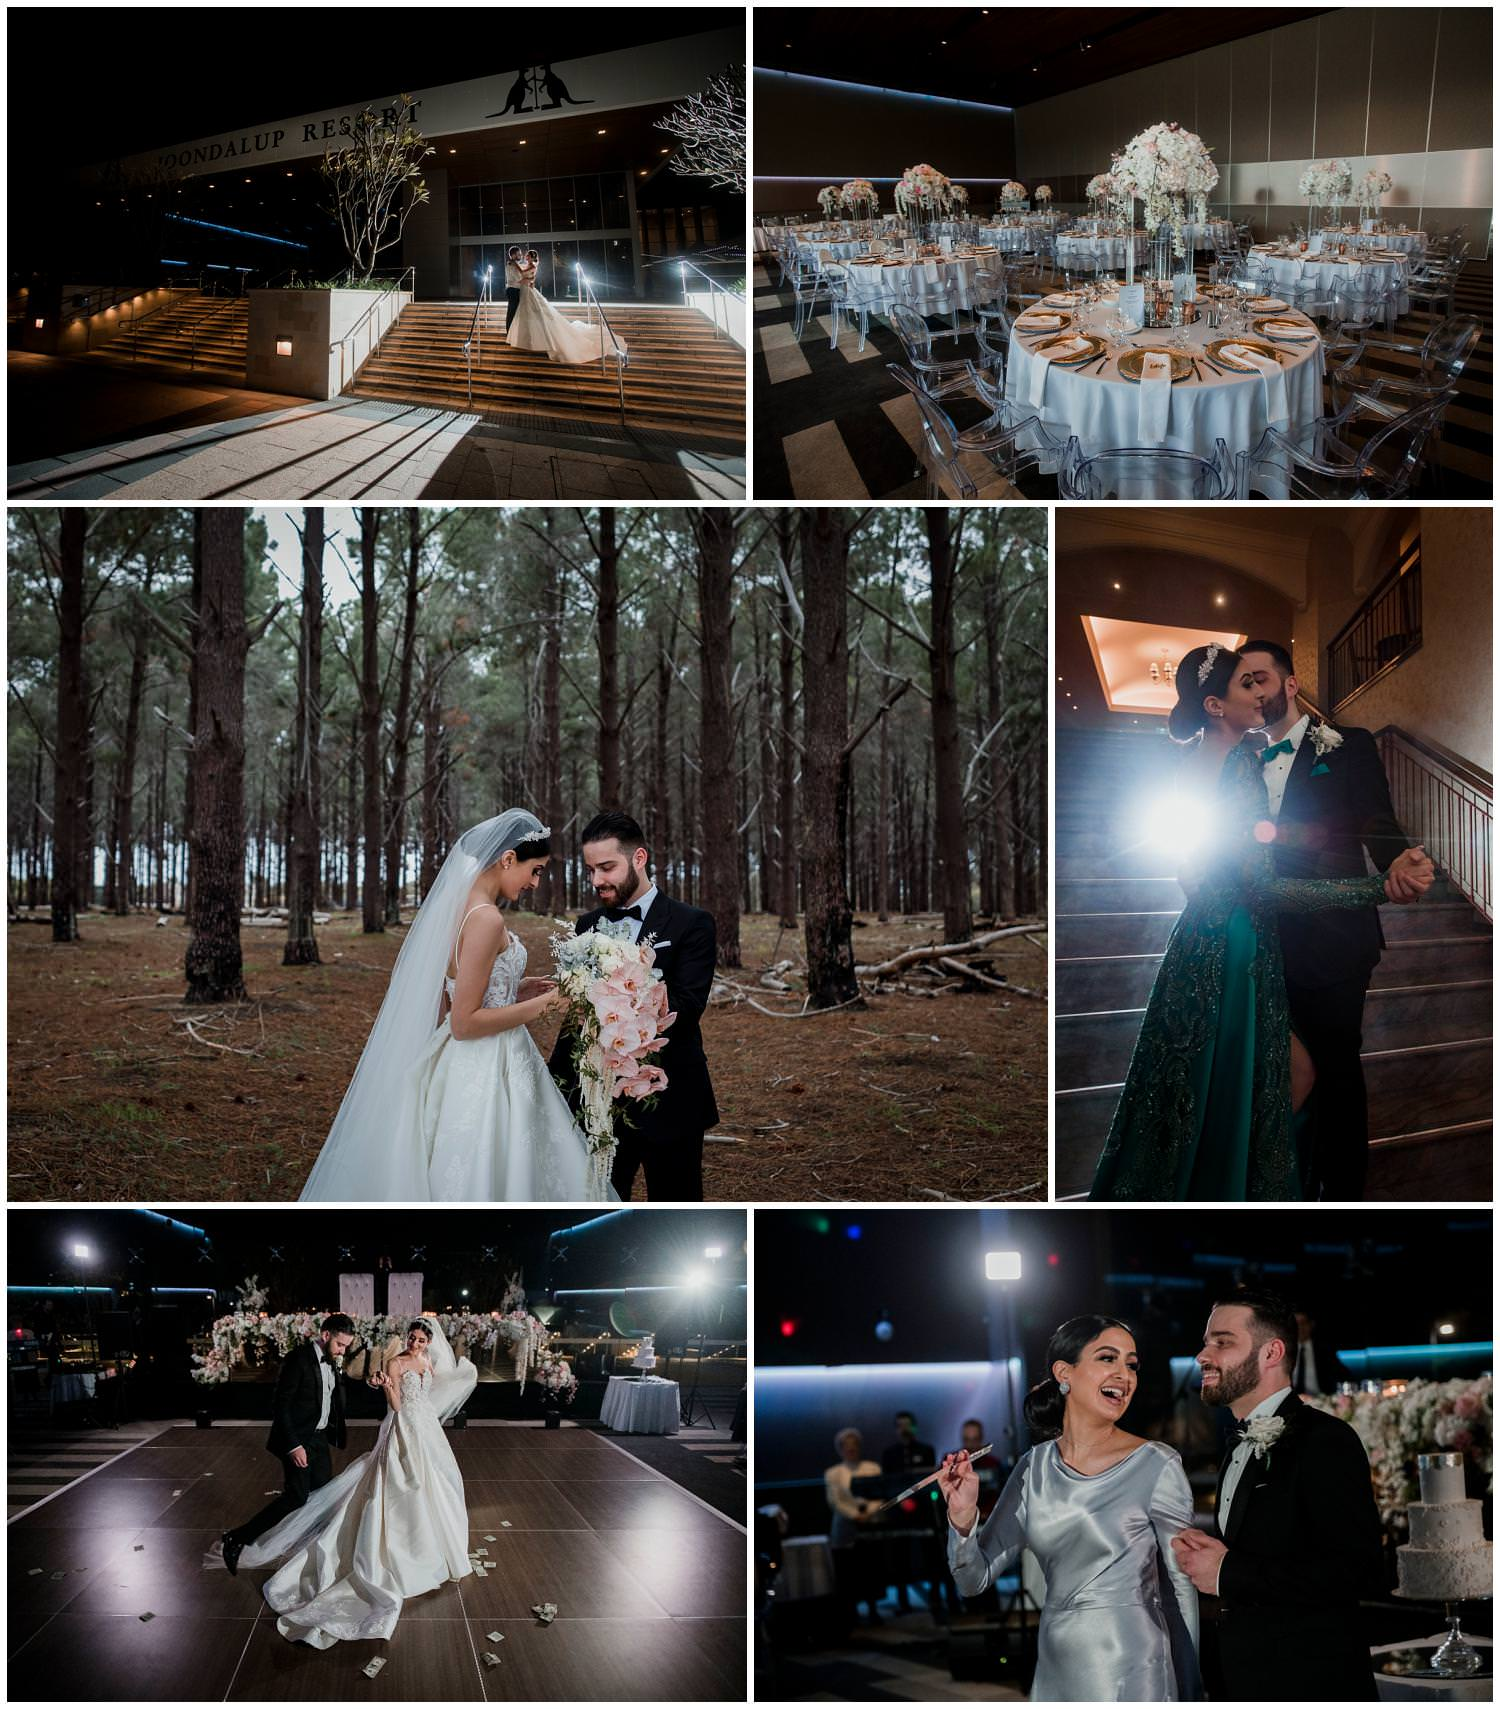 Hana + Seb - Joondalup Resort Persian Wedding